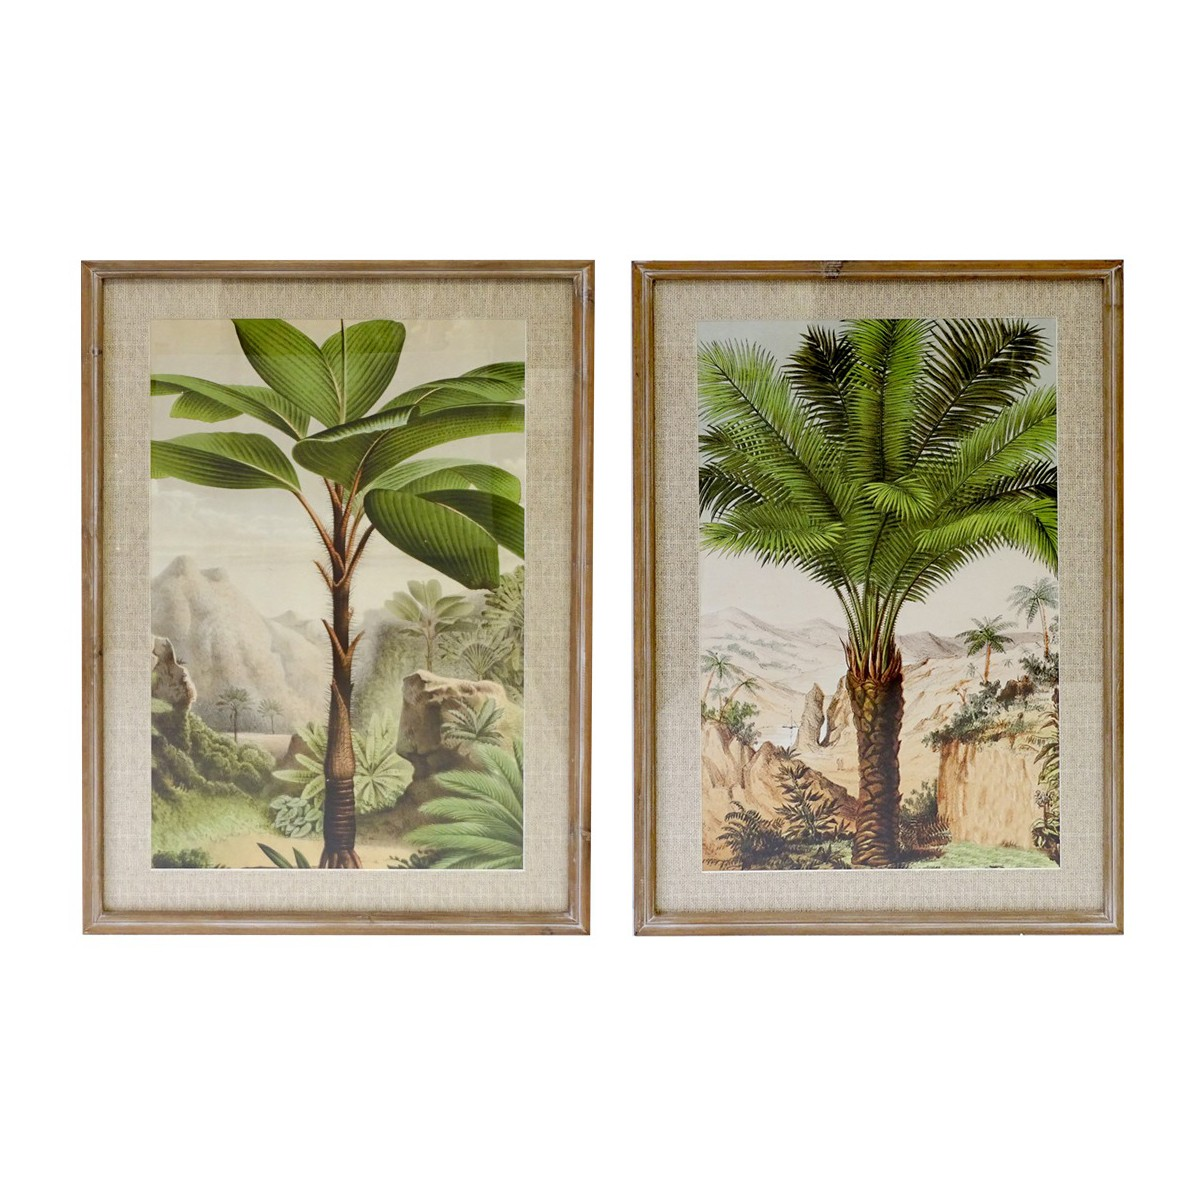 Meadows 2 Piece Timber Framed Wall Art Print Set, Palm Valley, 90cm